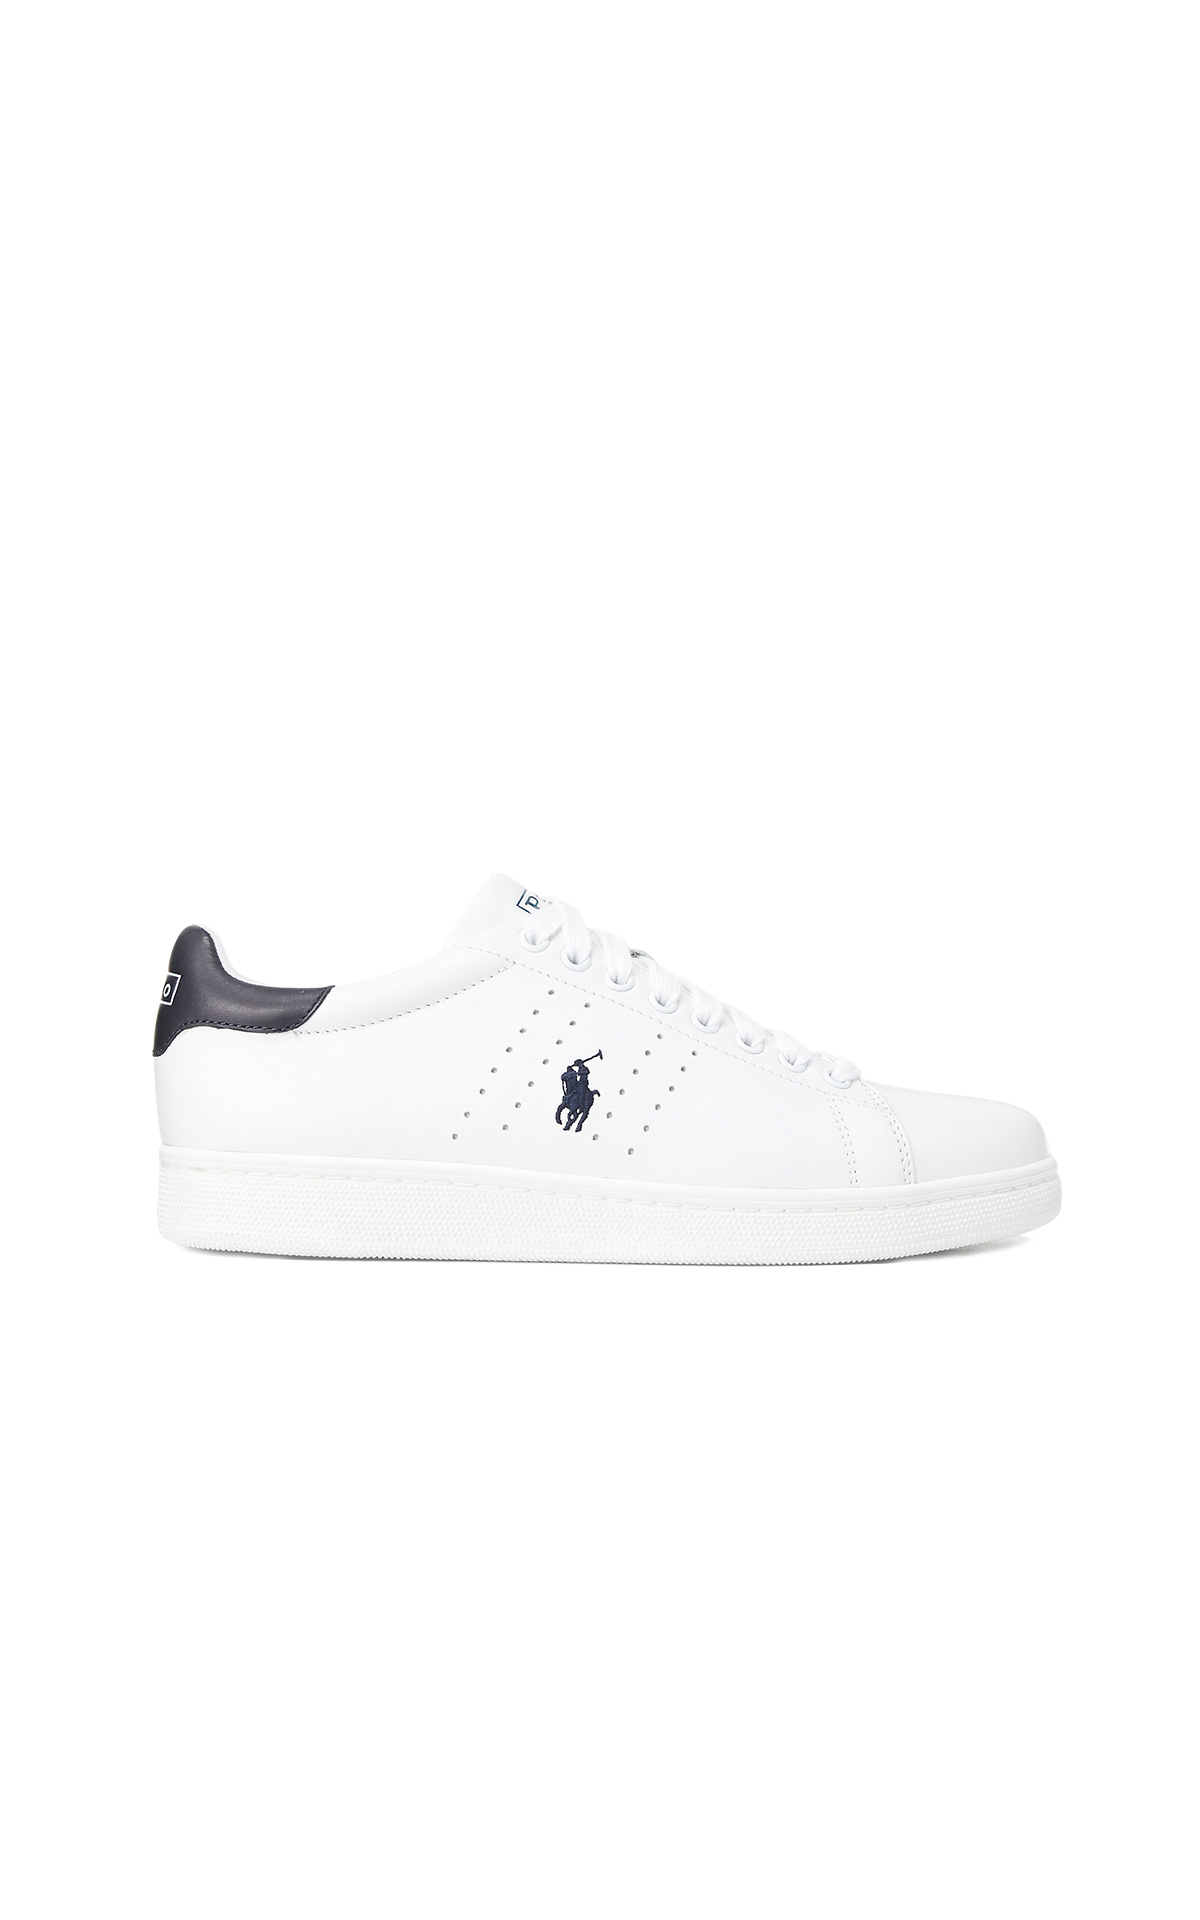 La Vallée Village Polo Ralph Lauren baskets blanches avec logo PRL